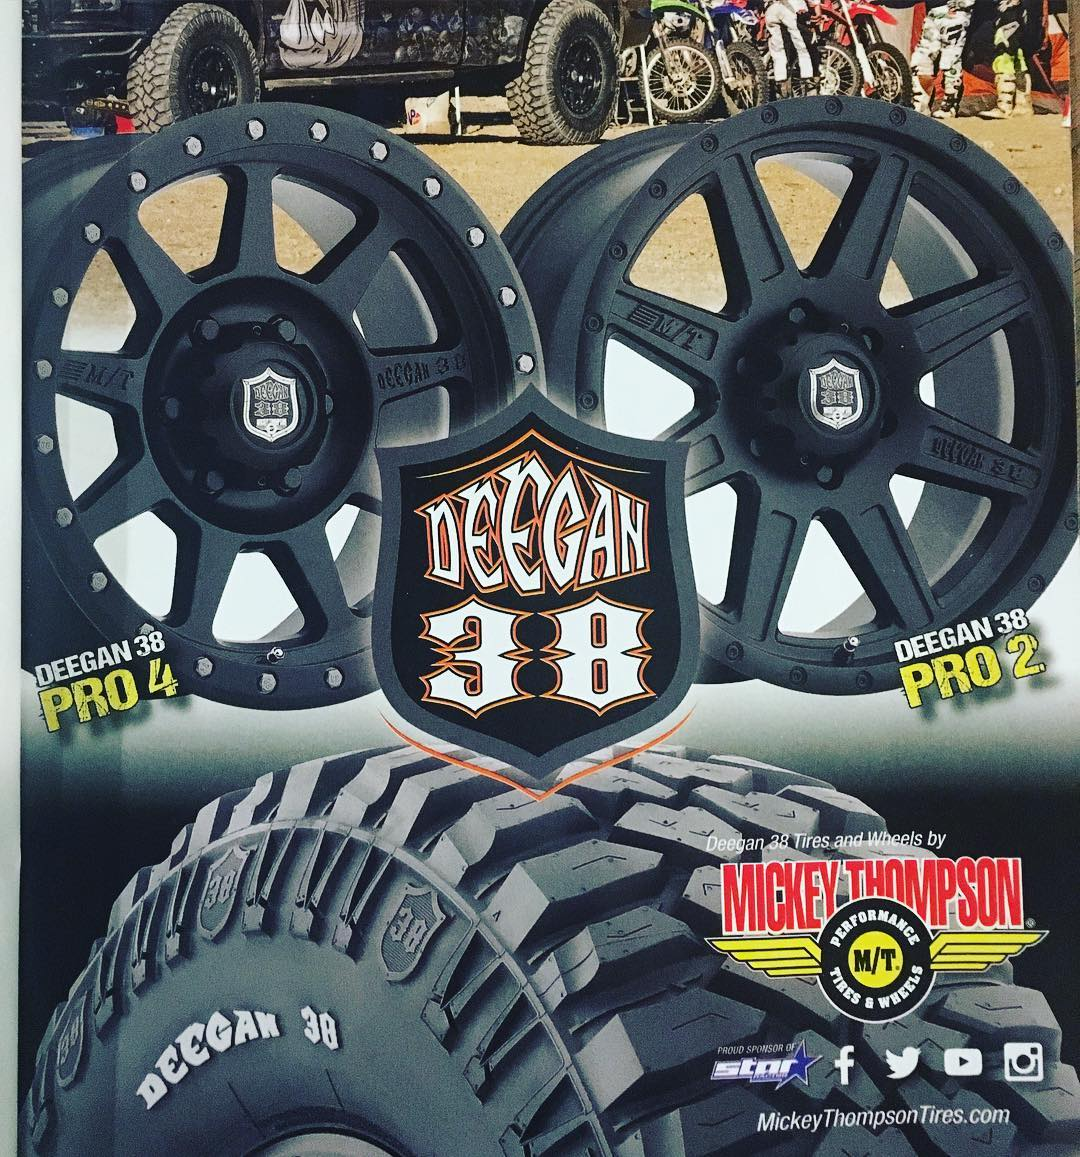 Stoked on the response on the tires .  Seems like they work well. #Deegan38tires and #wheels by @mickeythompsontires MickeyThompsontires.com #maketiresgreatagain